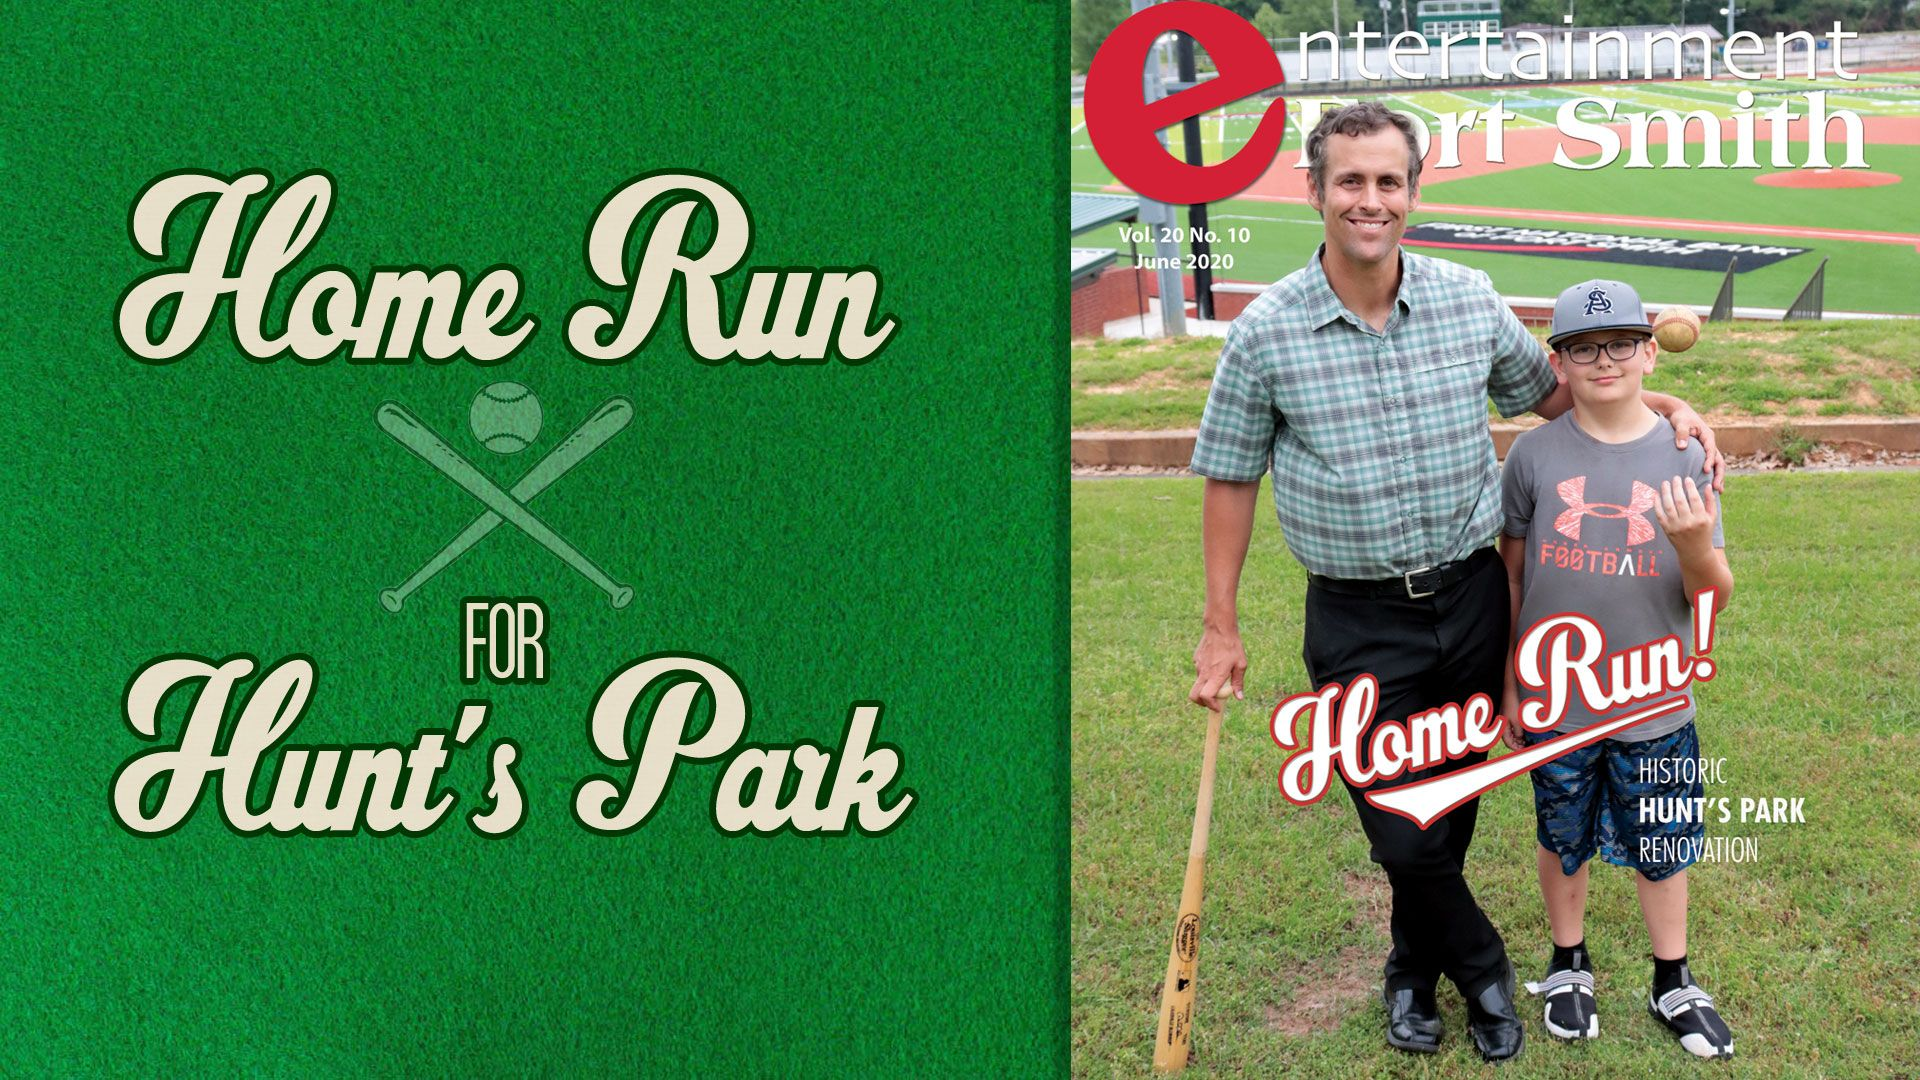 Home Run! Hunt's Park is refreshed for years of play